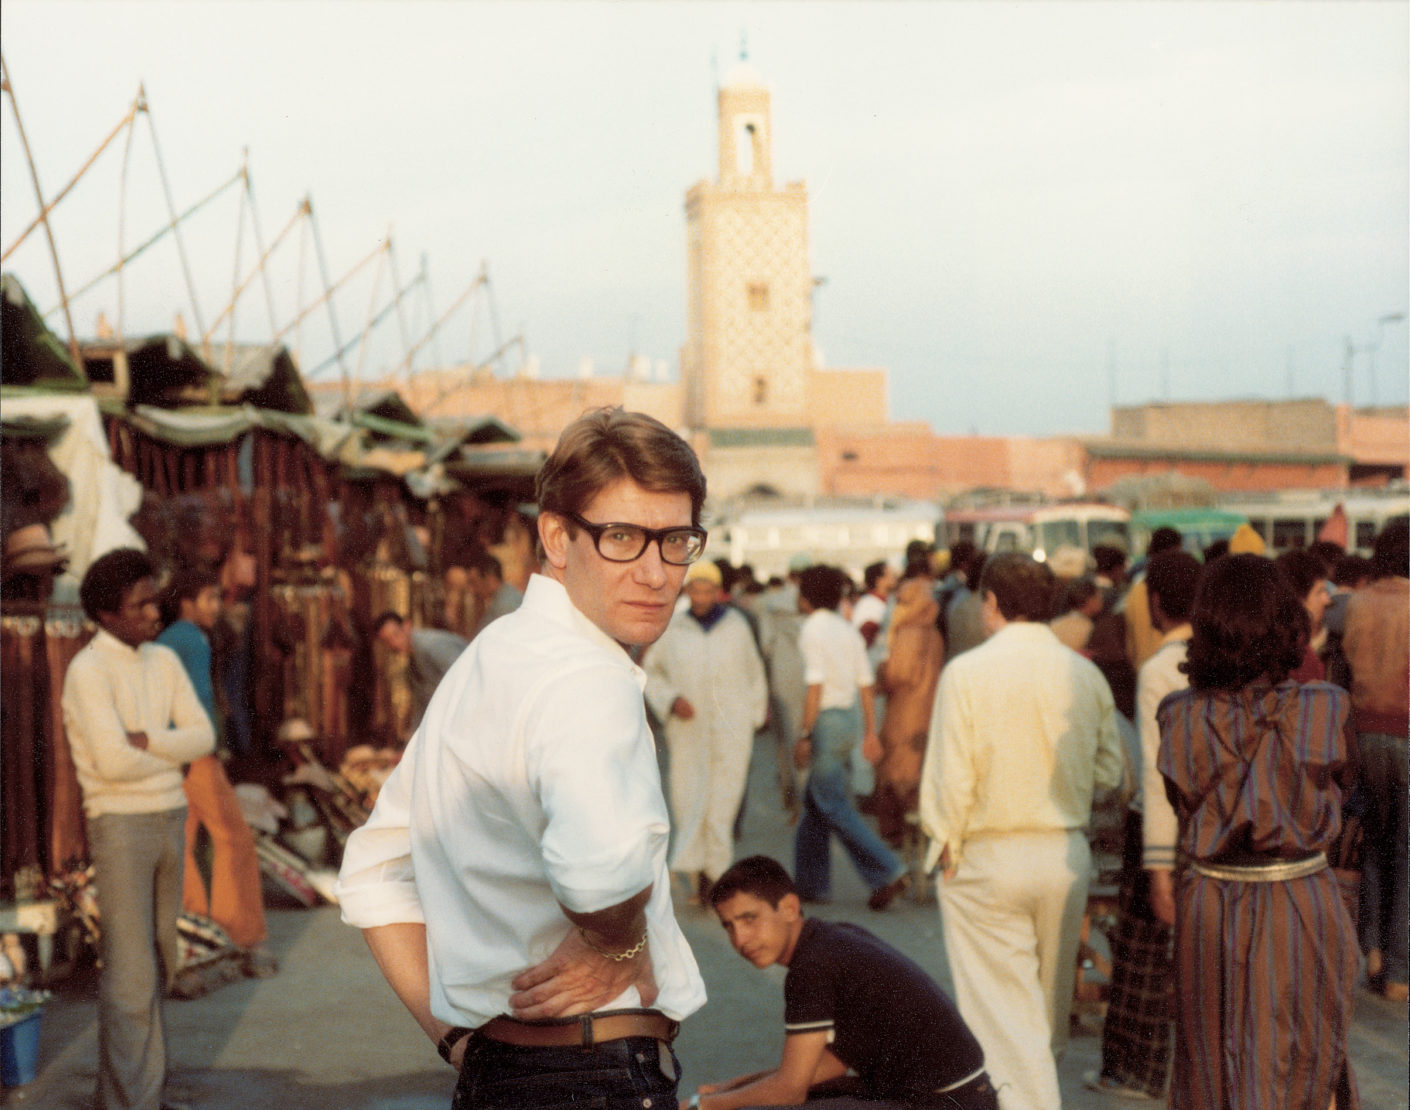 Yves Saint Laurent, Place Djemaa El Fna, Photo Reginald Gray, Stylepark